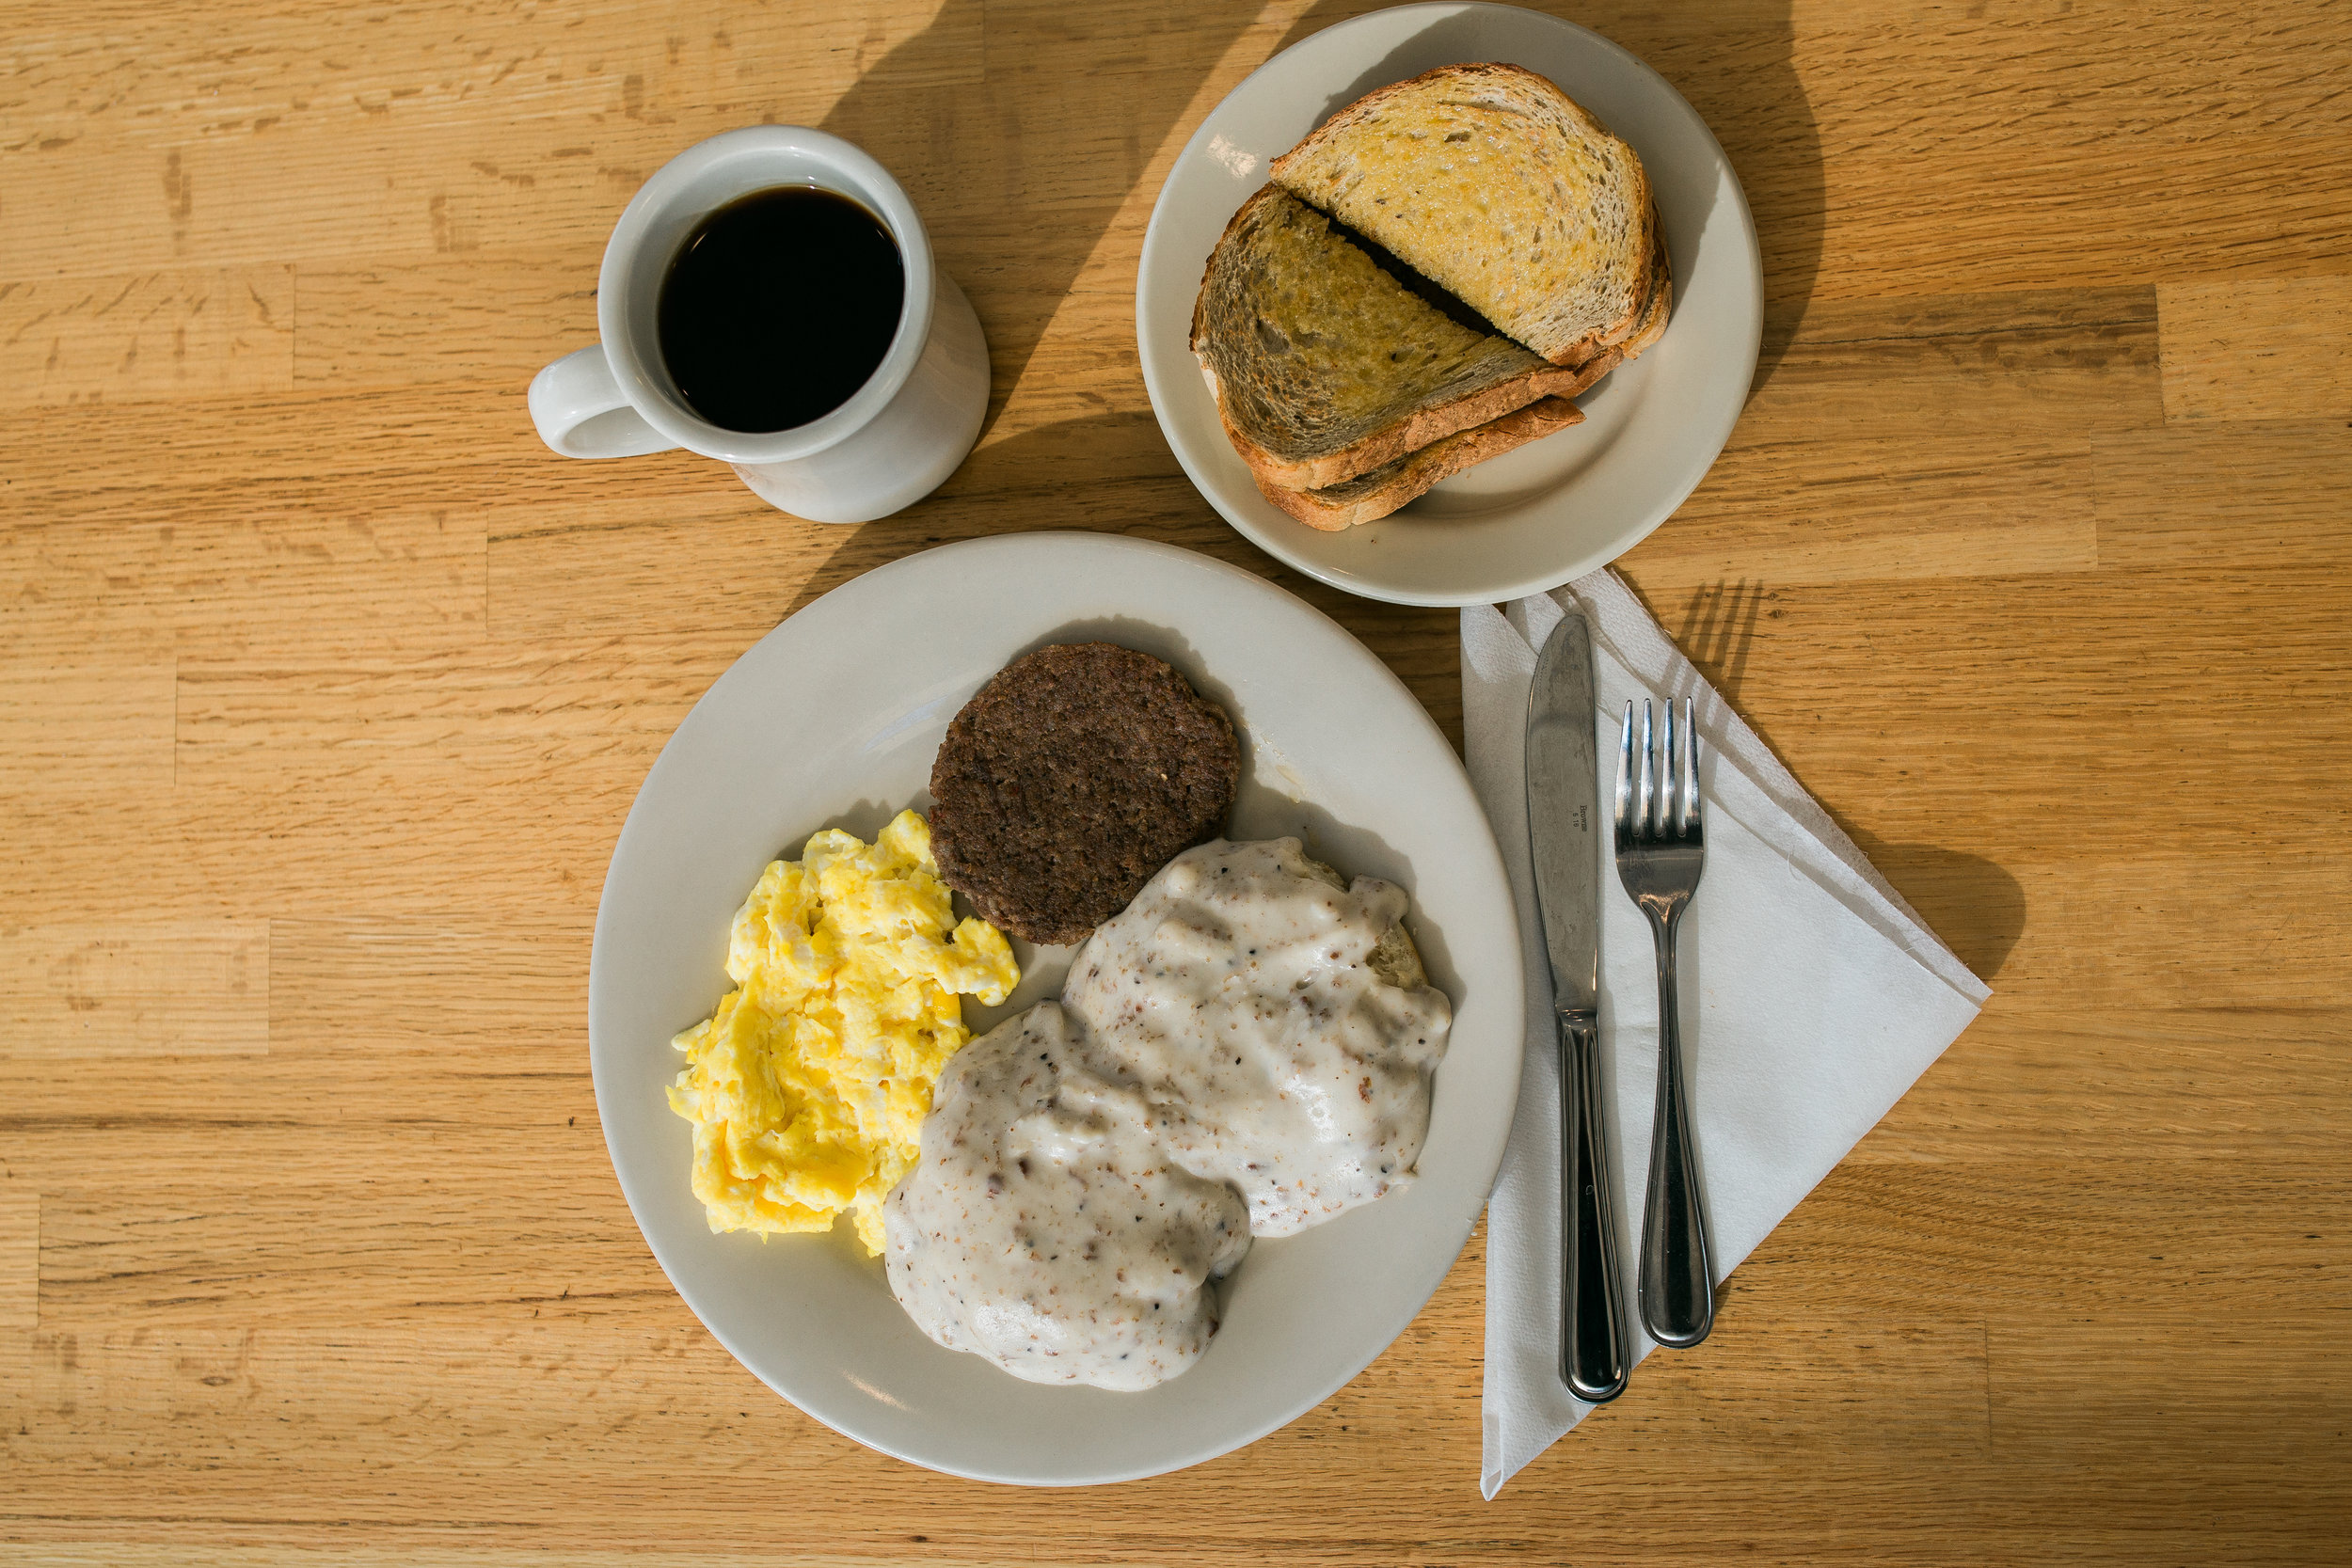 a hearty breakfast of two biscuits and country sausage gravy, scrambled eggs, a sausage patty, buttered rye toast and a cup of coffee